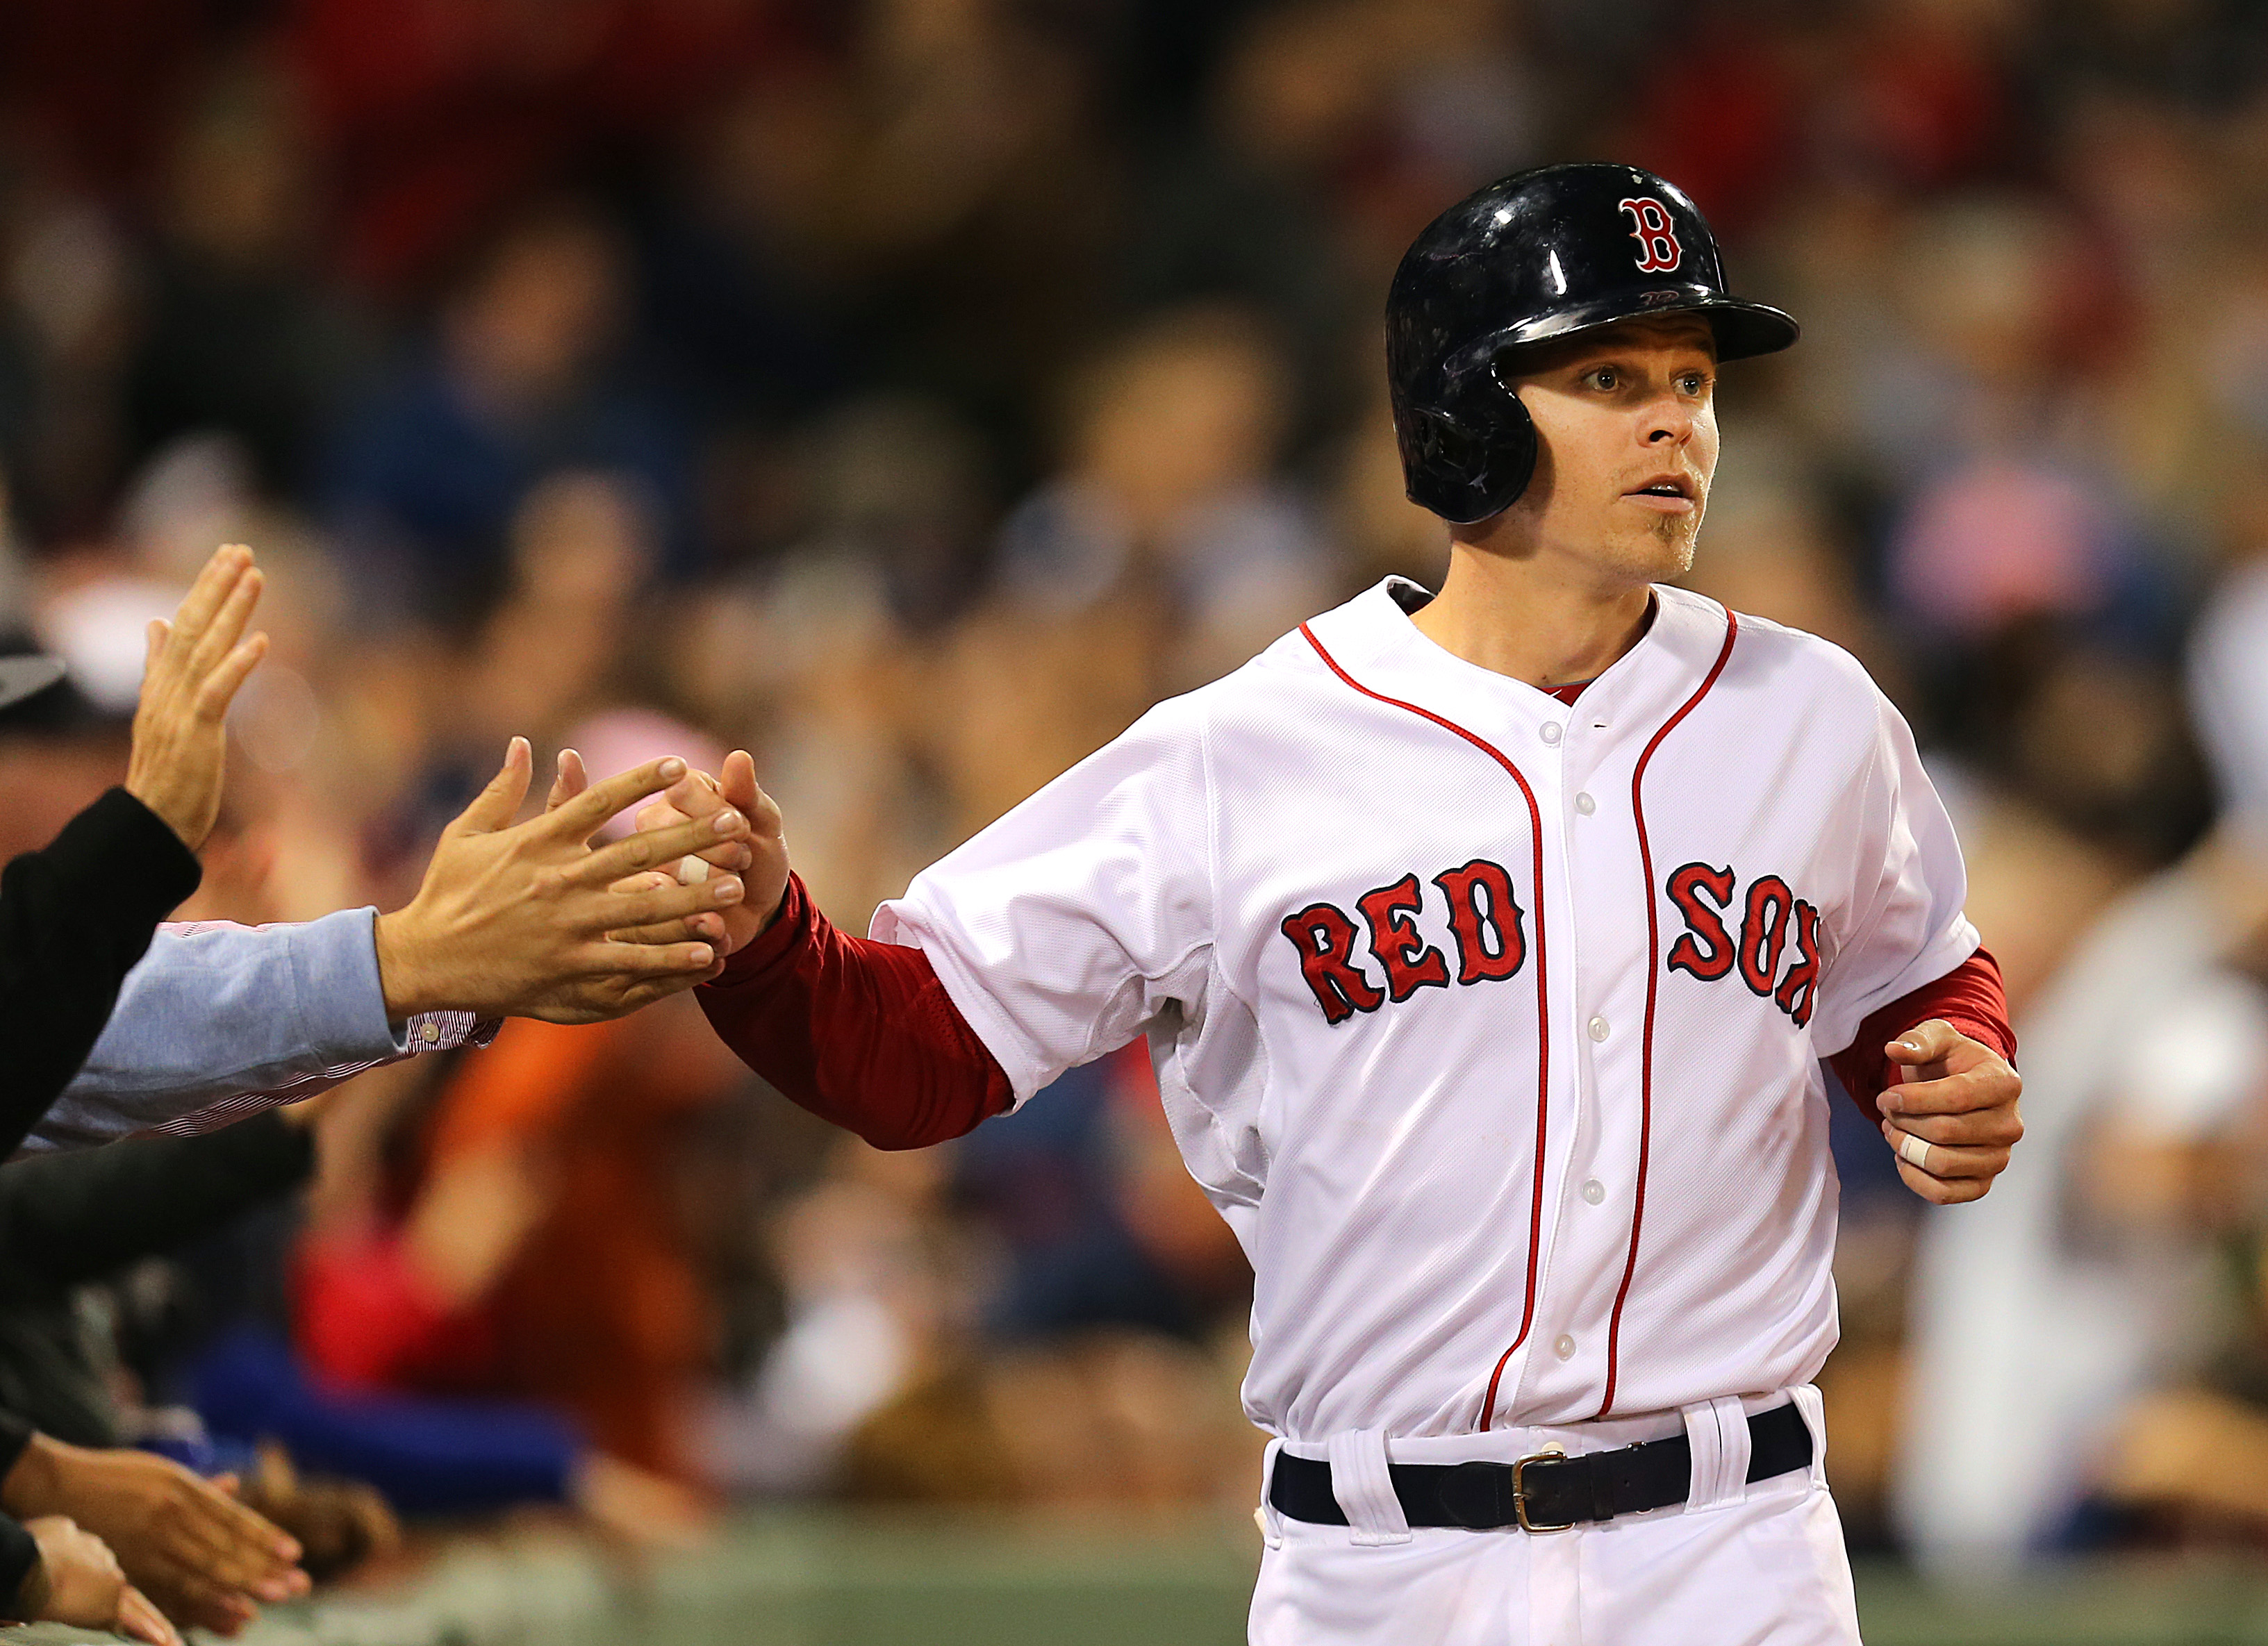 Brock Holt wants to stick with Red Sox - The Boston Globe